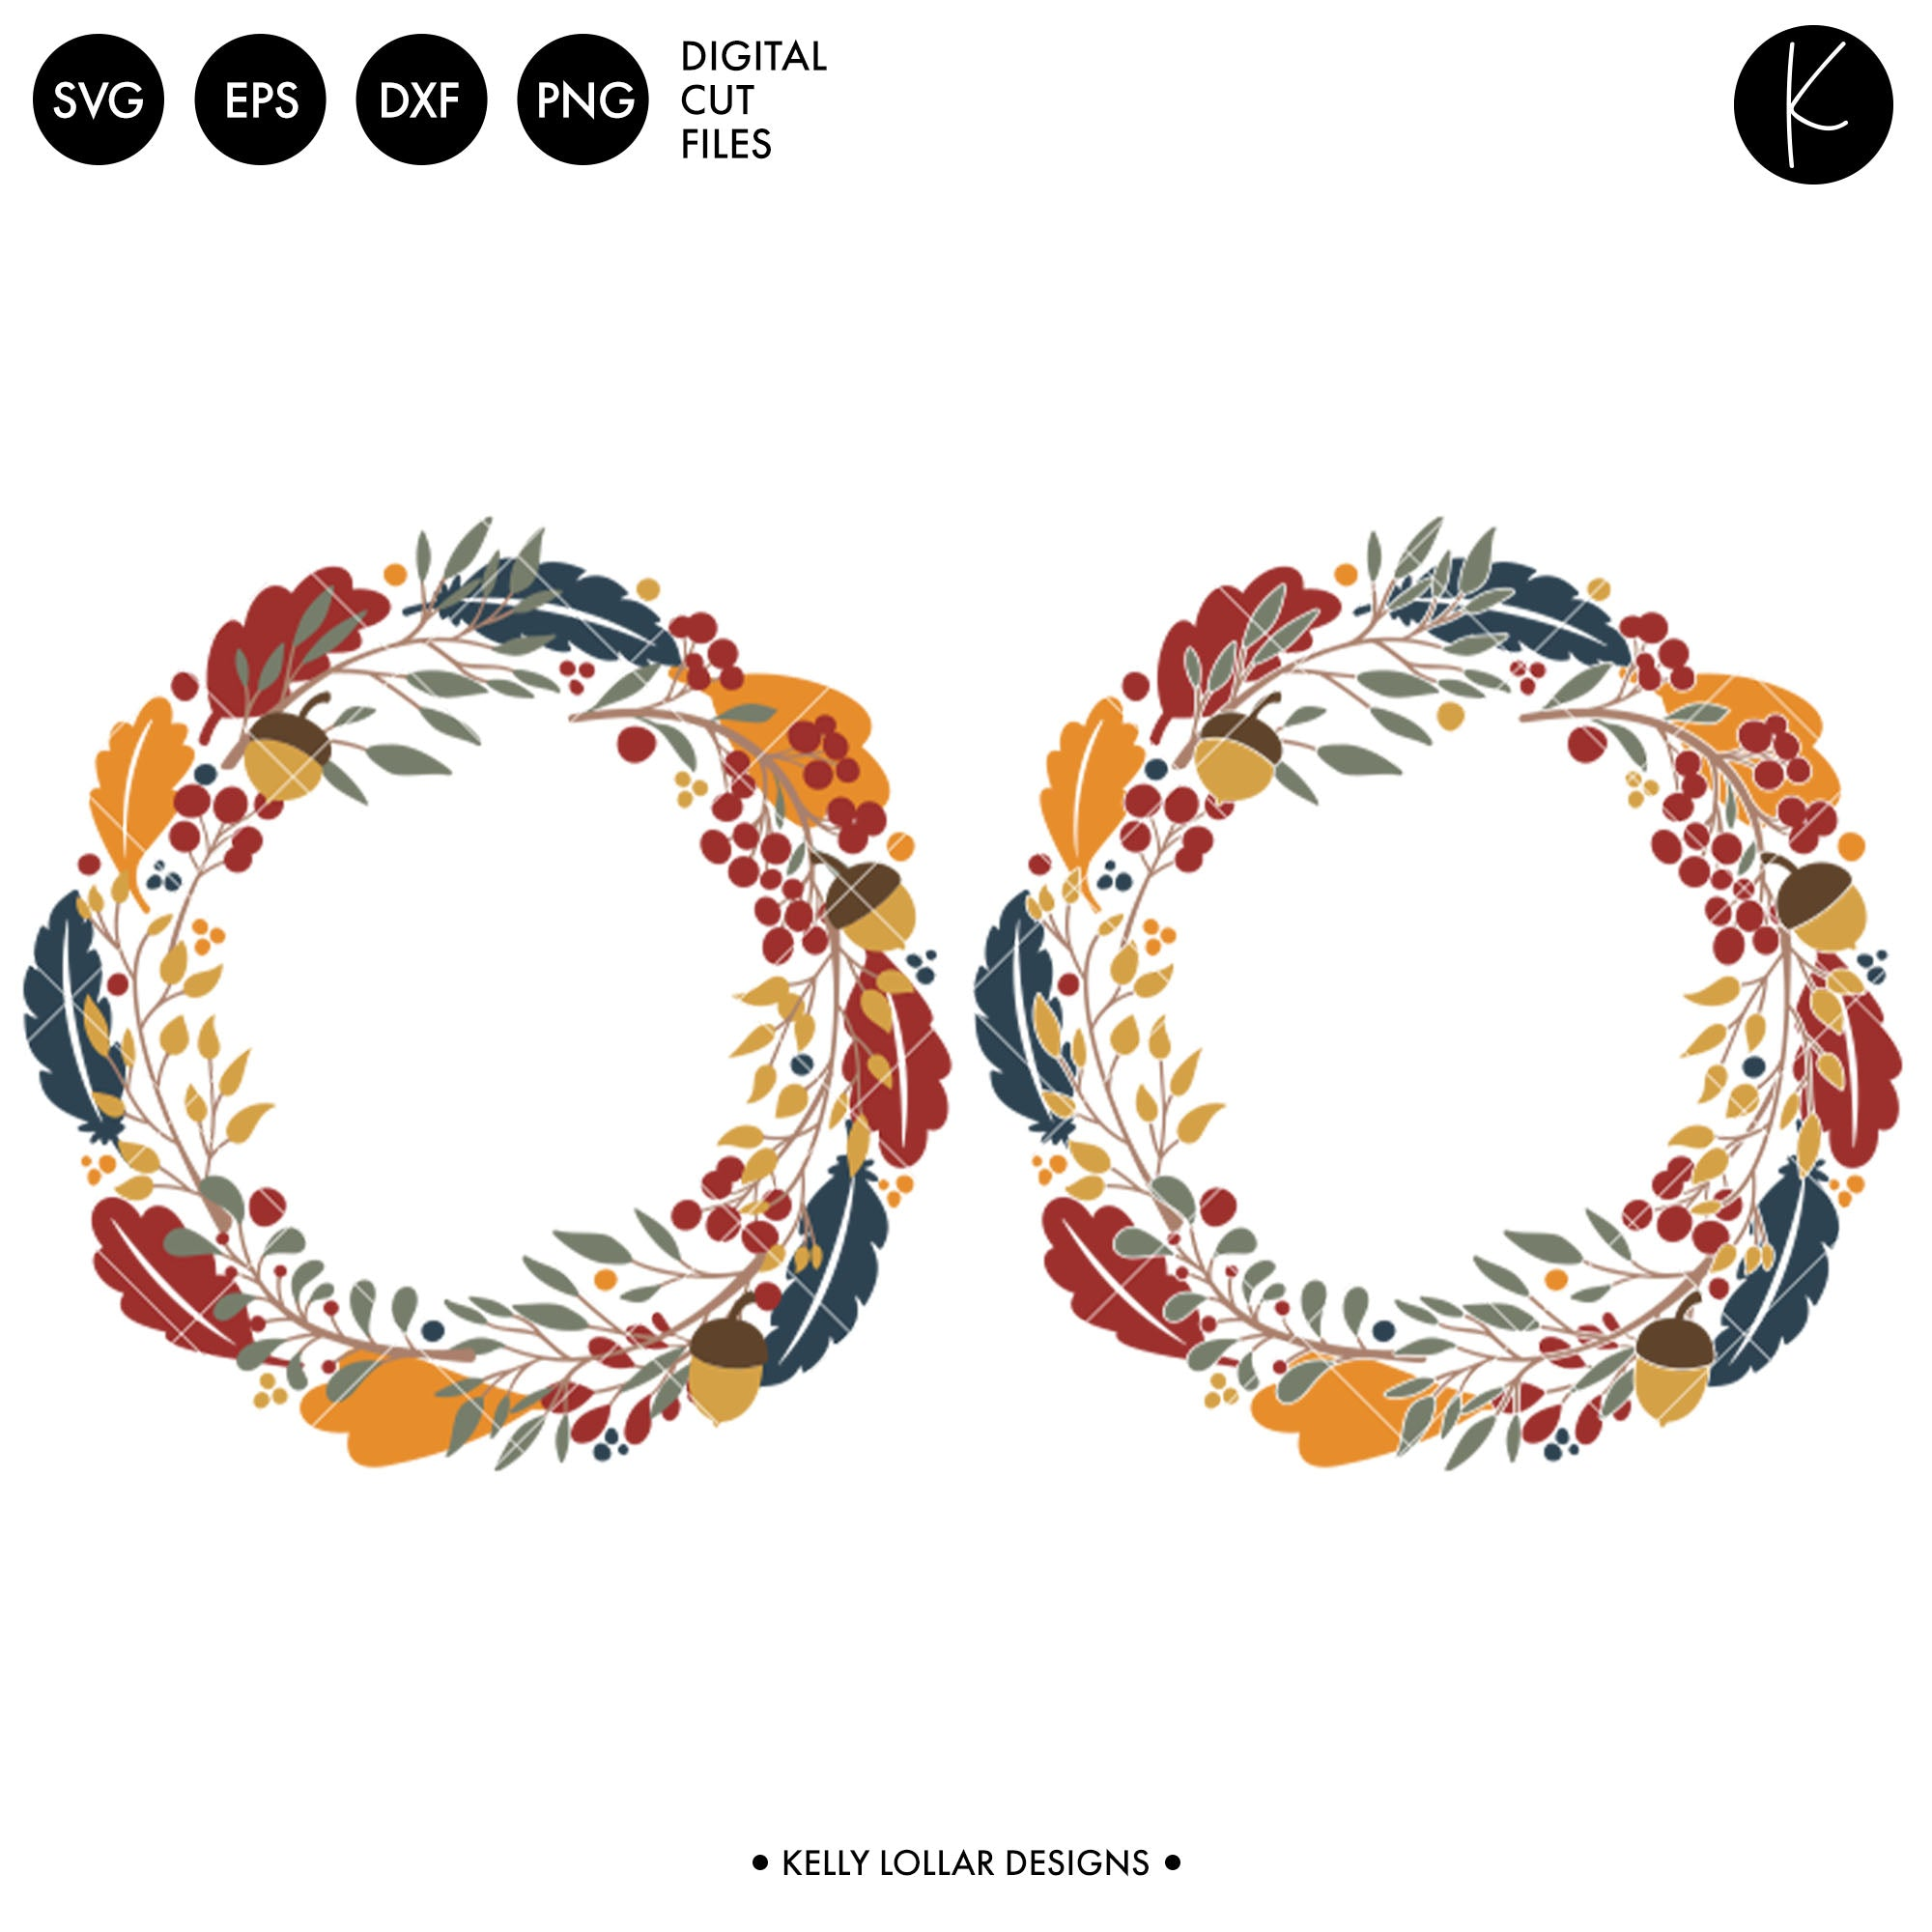 Fall Leaves Wreath Svg Dxf Eps Png Cut Files Kelly Lollar Designs